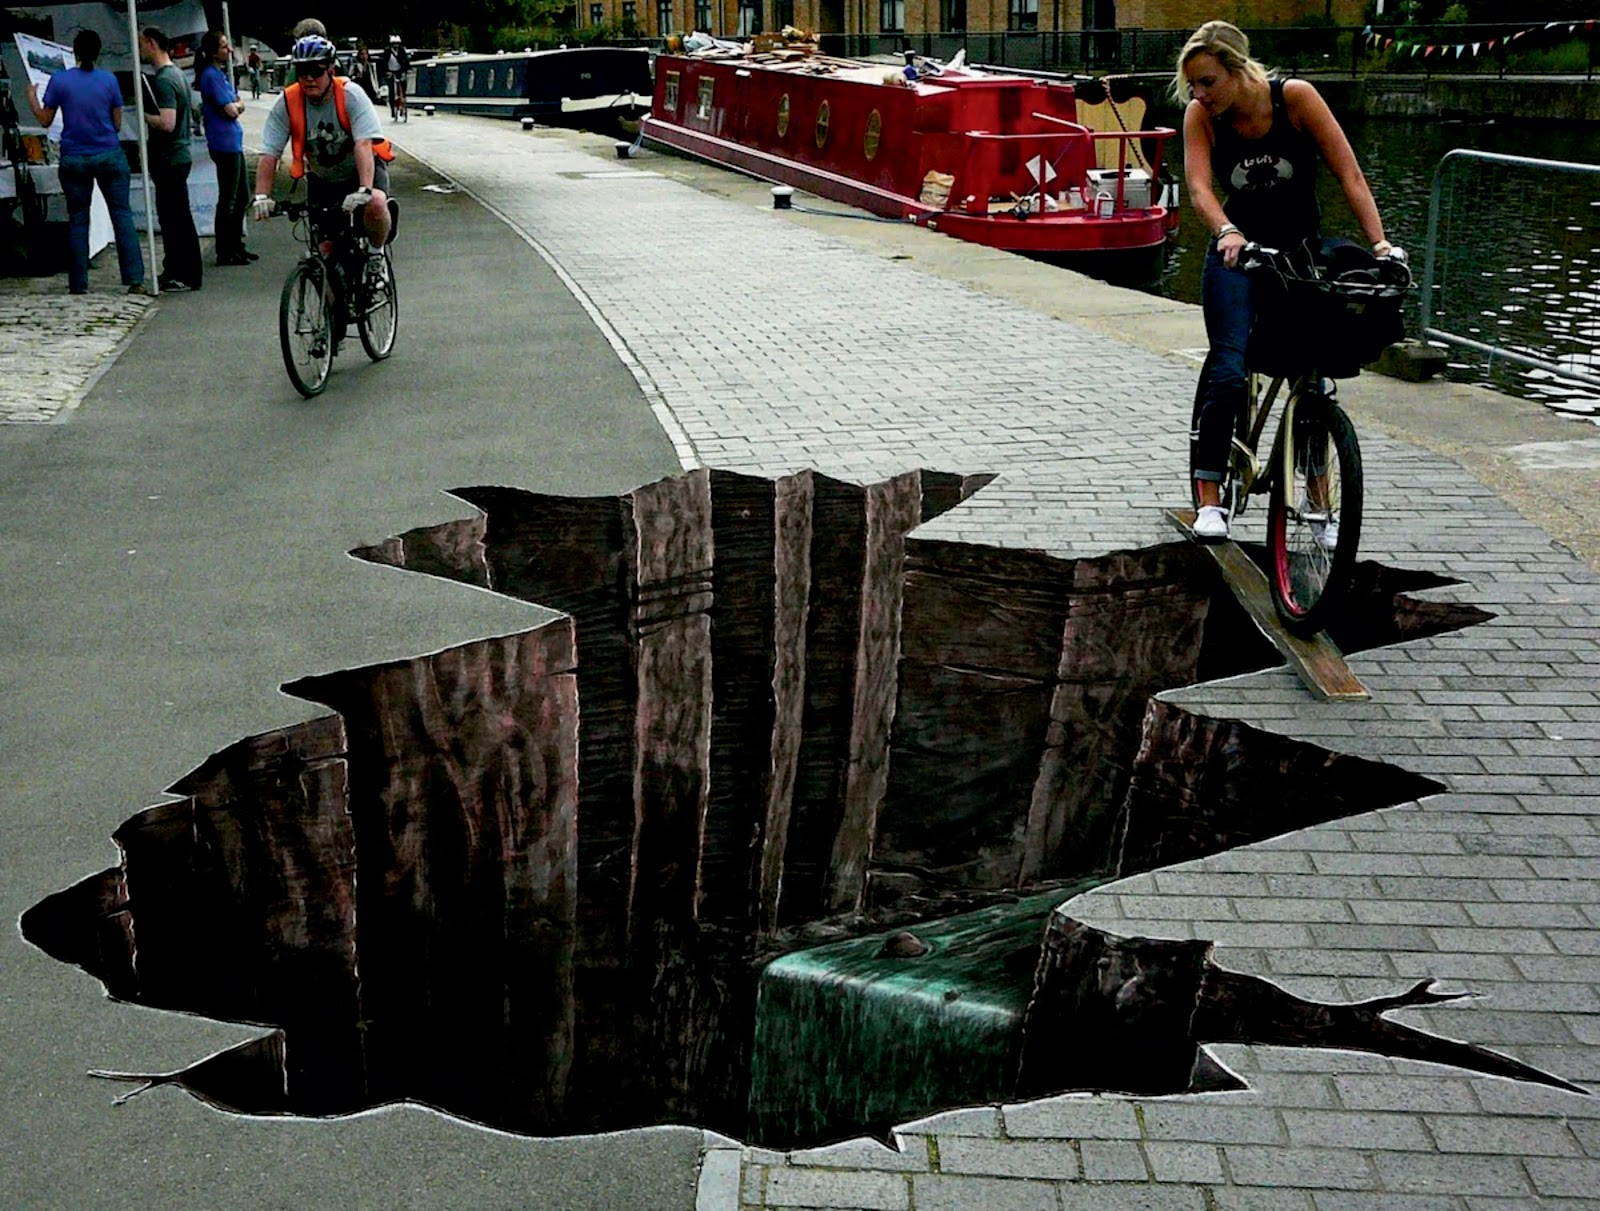 The Street Artist Community From The Graffiti Technica Website Makes Awesome 3D Graffitis In Photographies Or Videos A High Quality Street Art Between